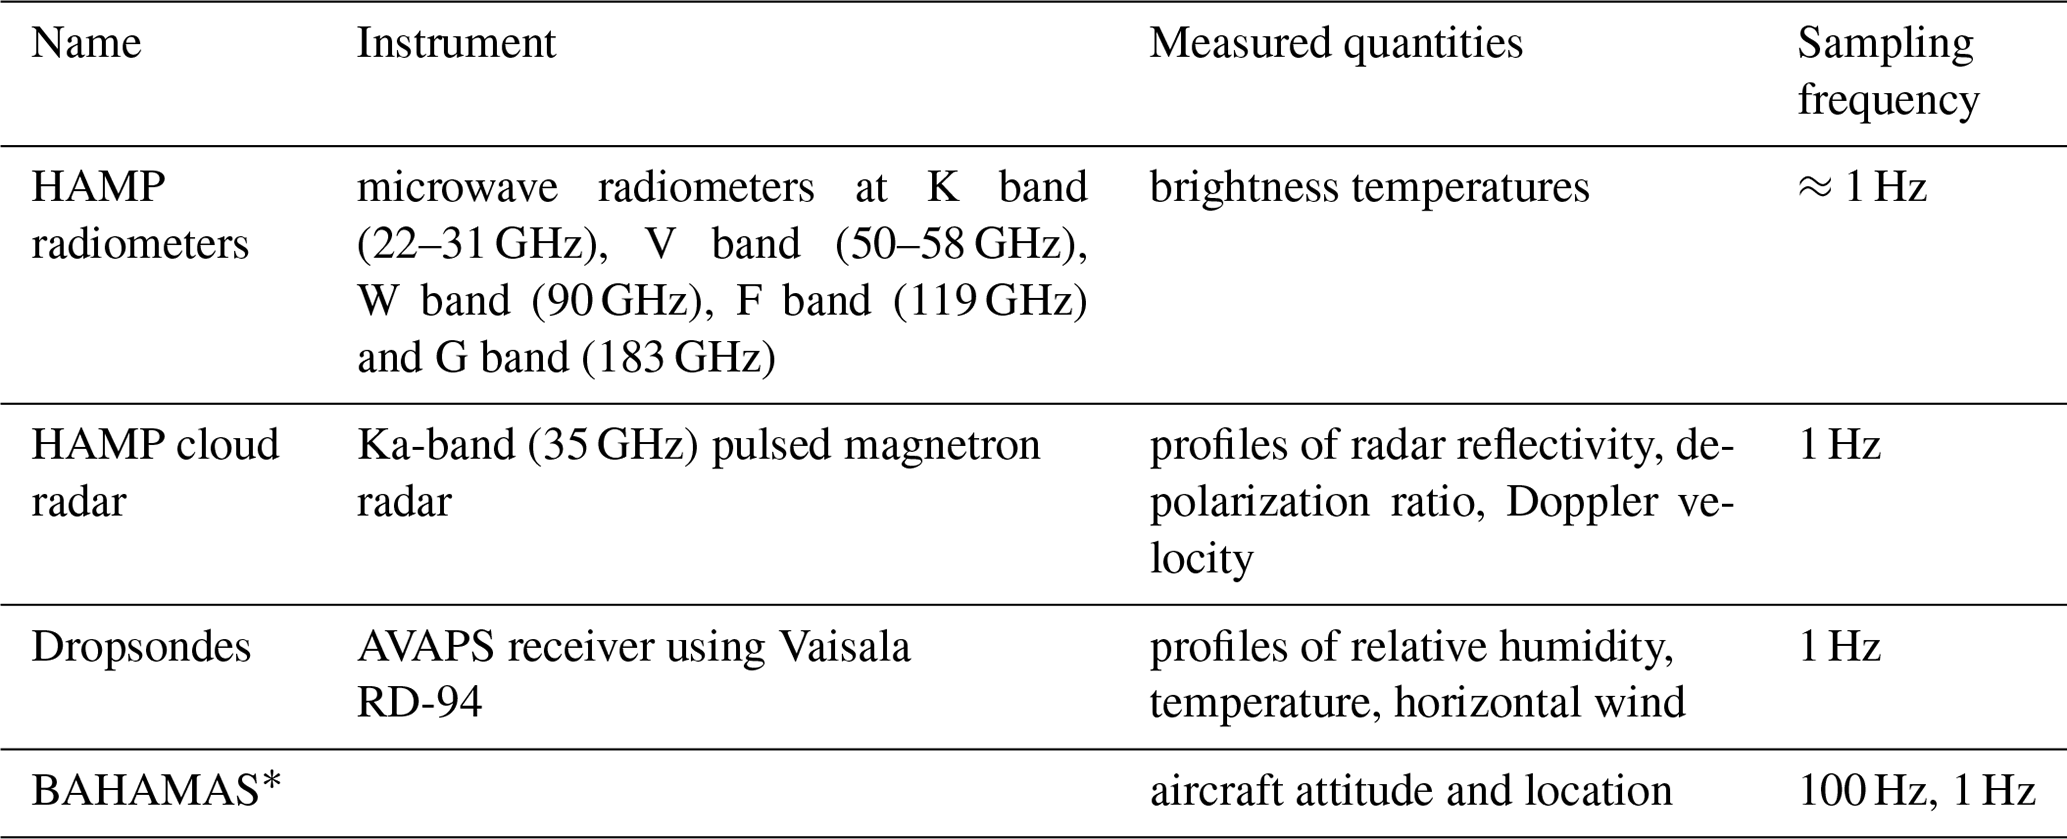 ESSD - A unified data set of airborne cloud remote sensing